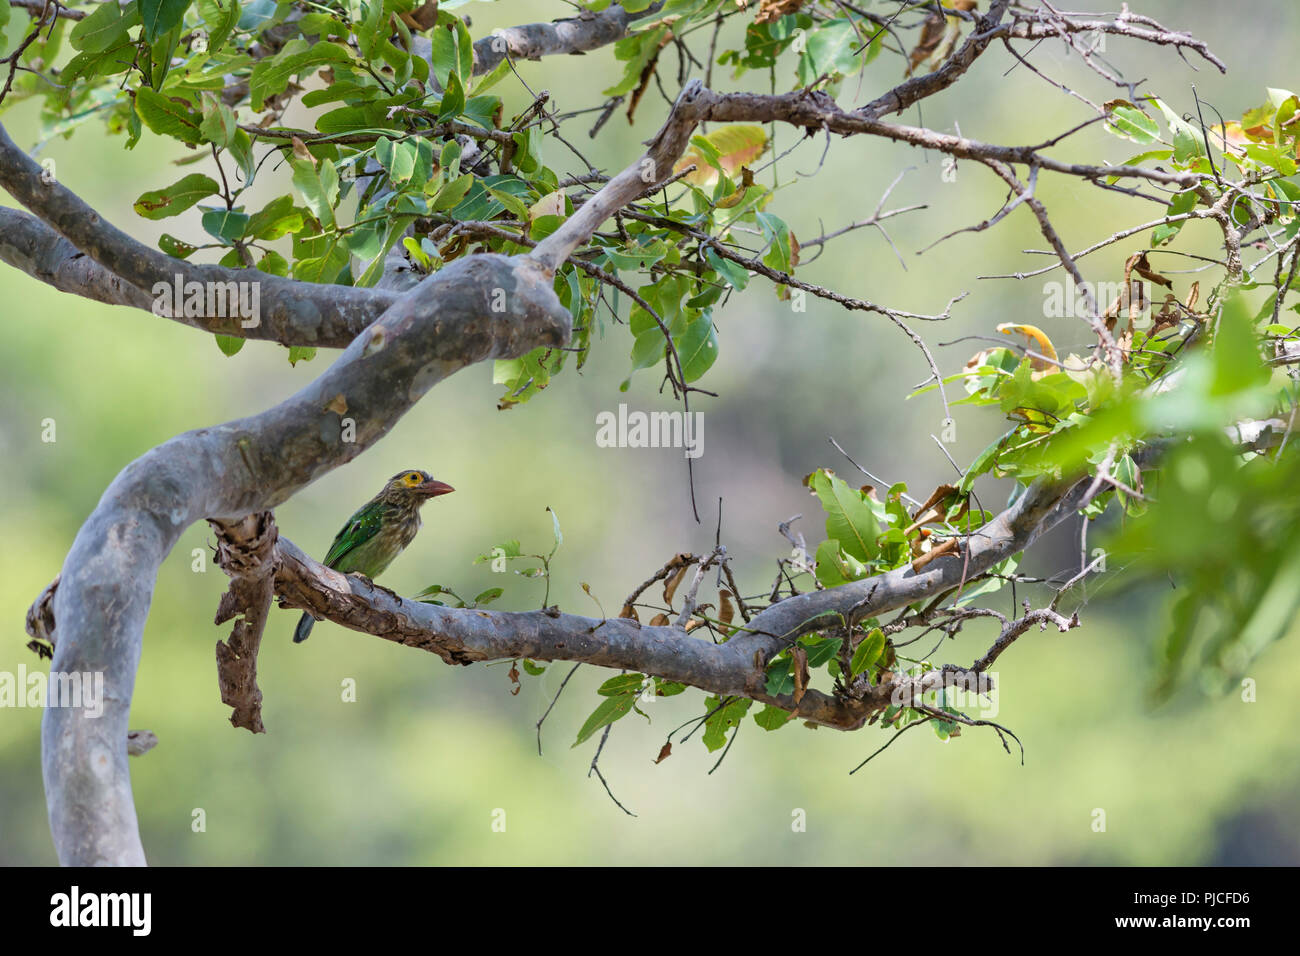 Brown-headed Barbet - Psilopogon zeylanicus, beautiful colored barbet from woodlands of Indian subcontinent, Sri Lanka. - Stock Image